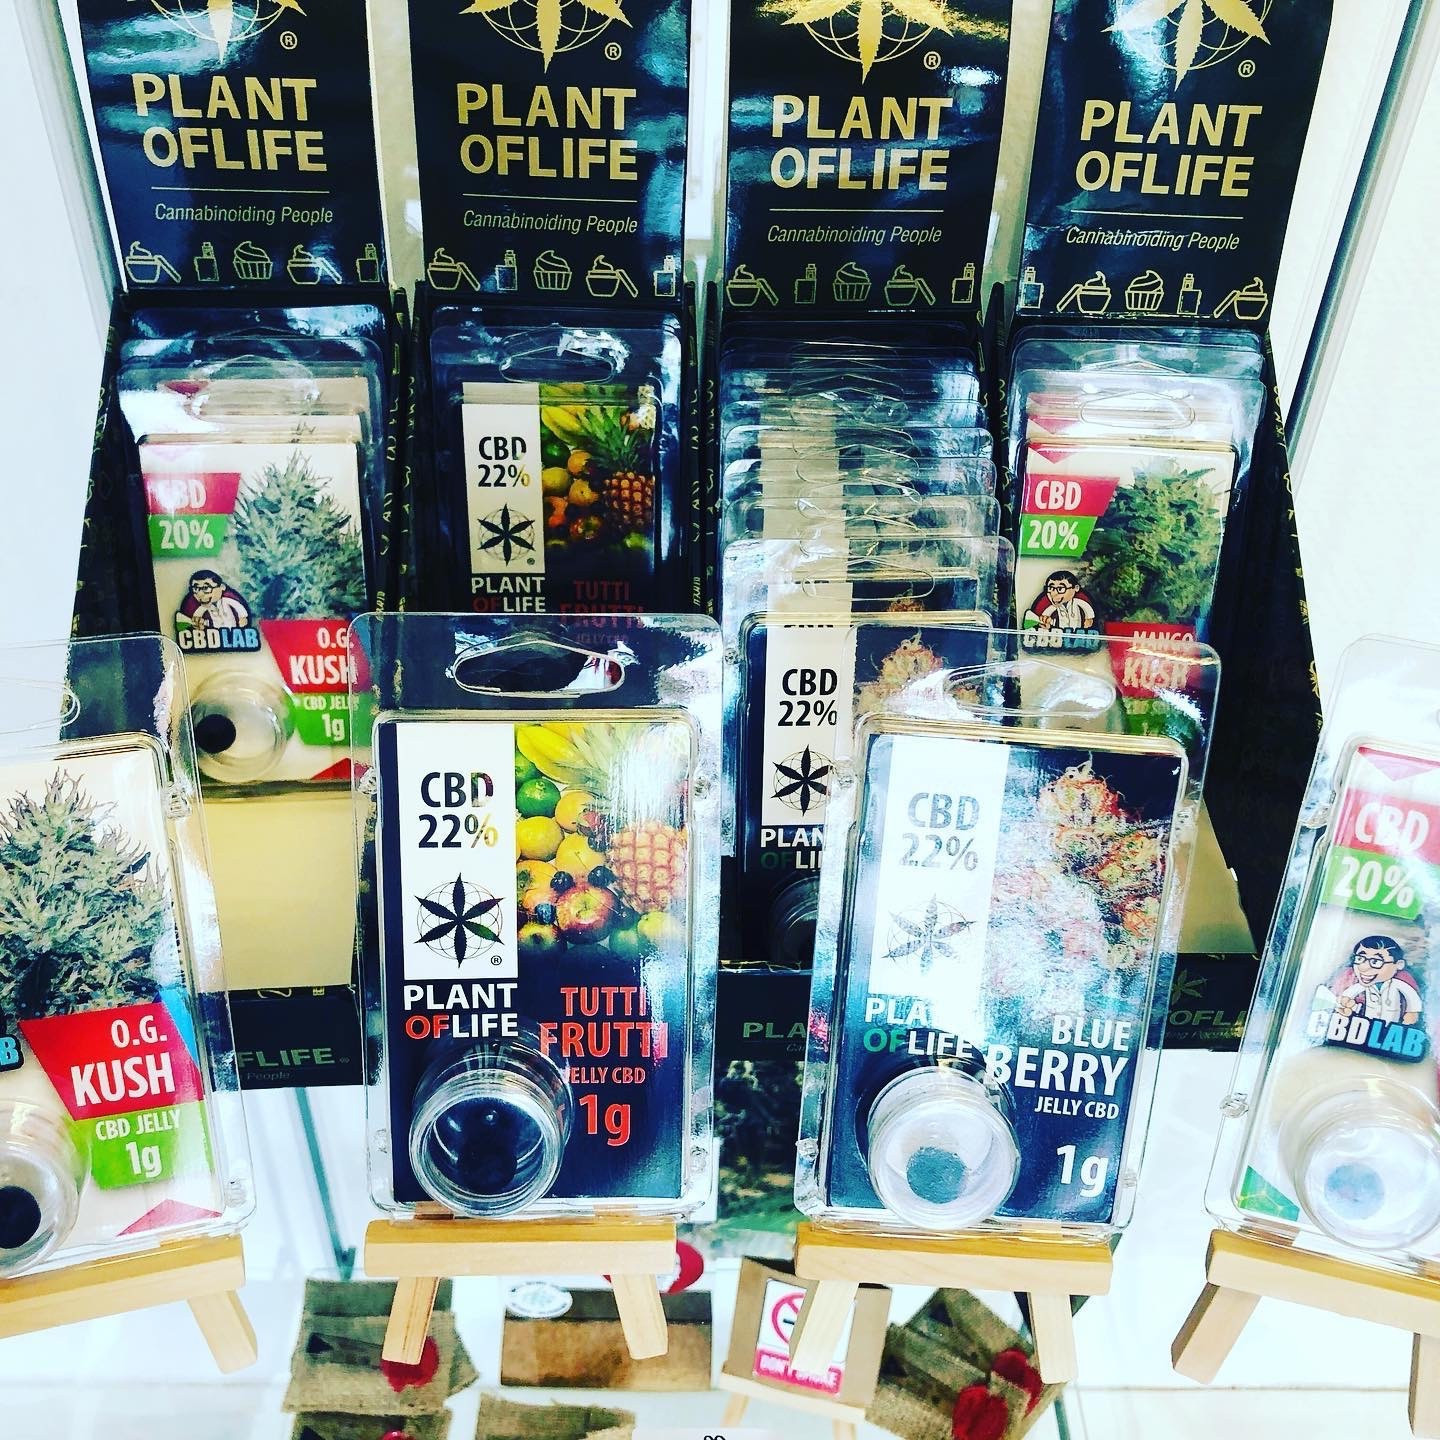 Plant of life Cbd 22% Jelly 31400 Toulouse